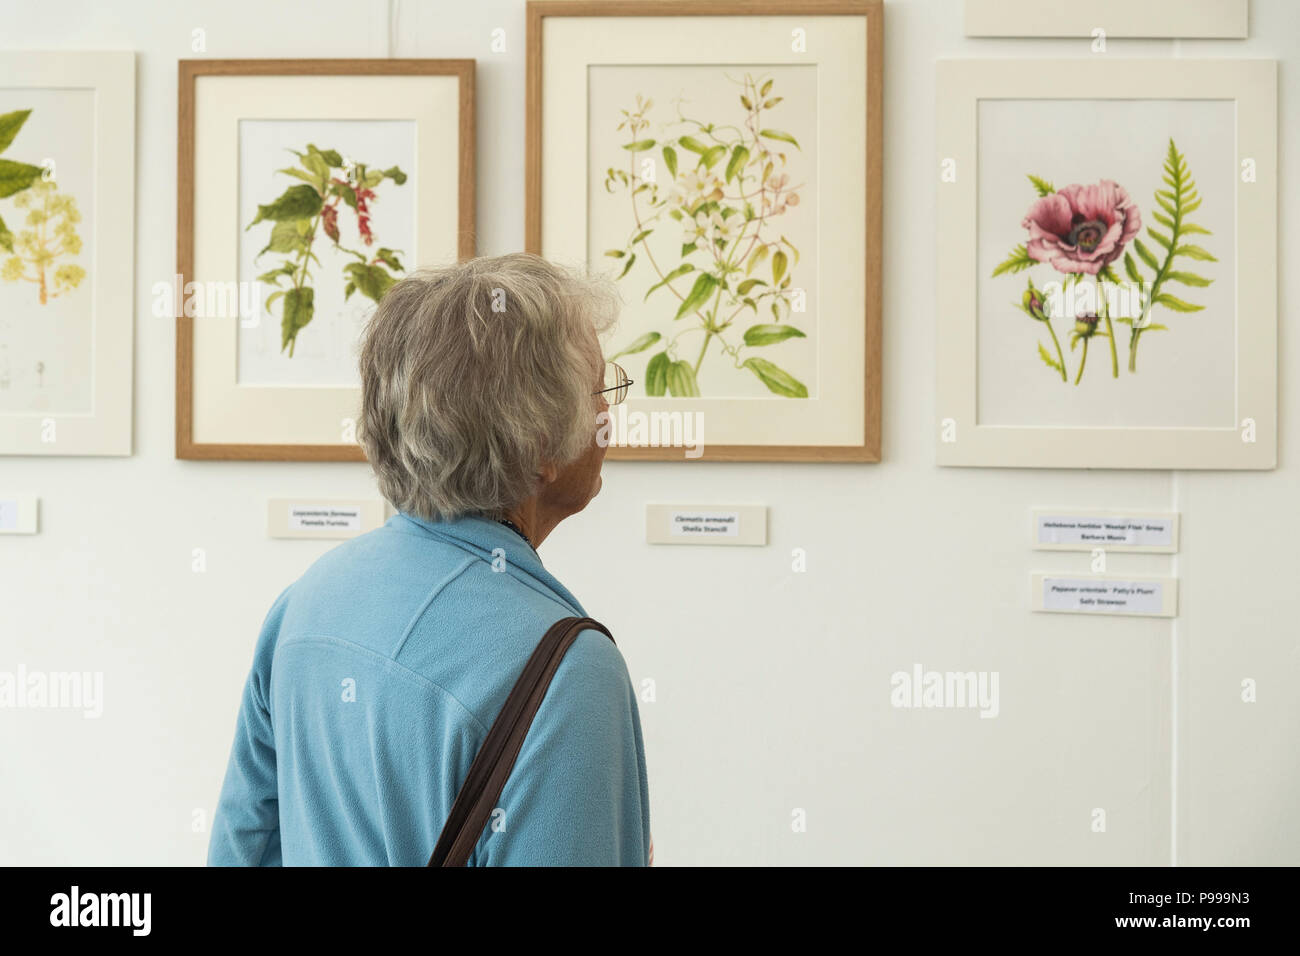 Woman at exhibition, looking closely at display of realistic beautiful botanical art paintings - RHS Chatsworth Flower Show, Derbyshire, England, UK. - Stock Image